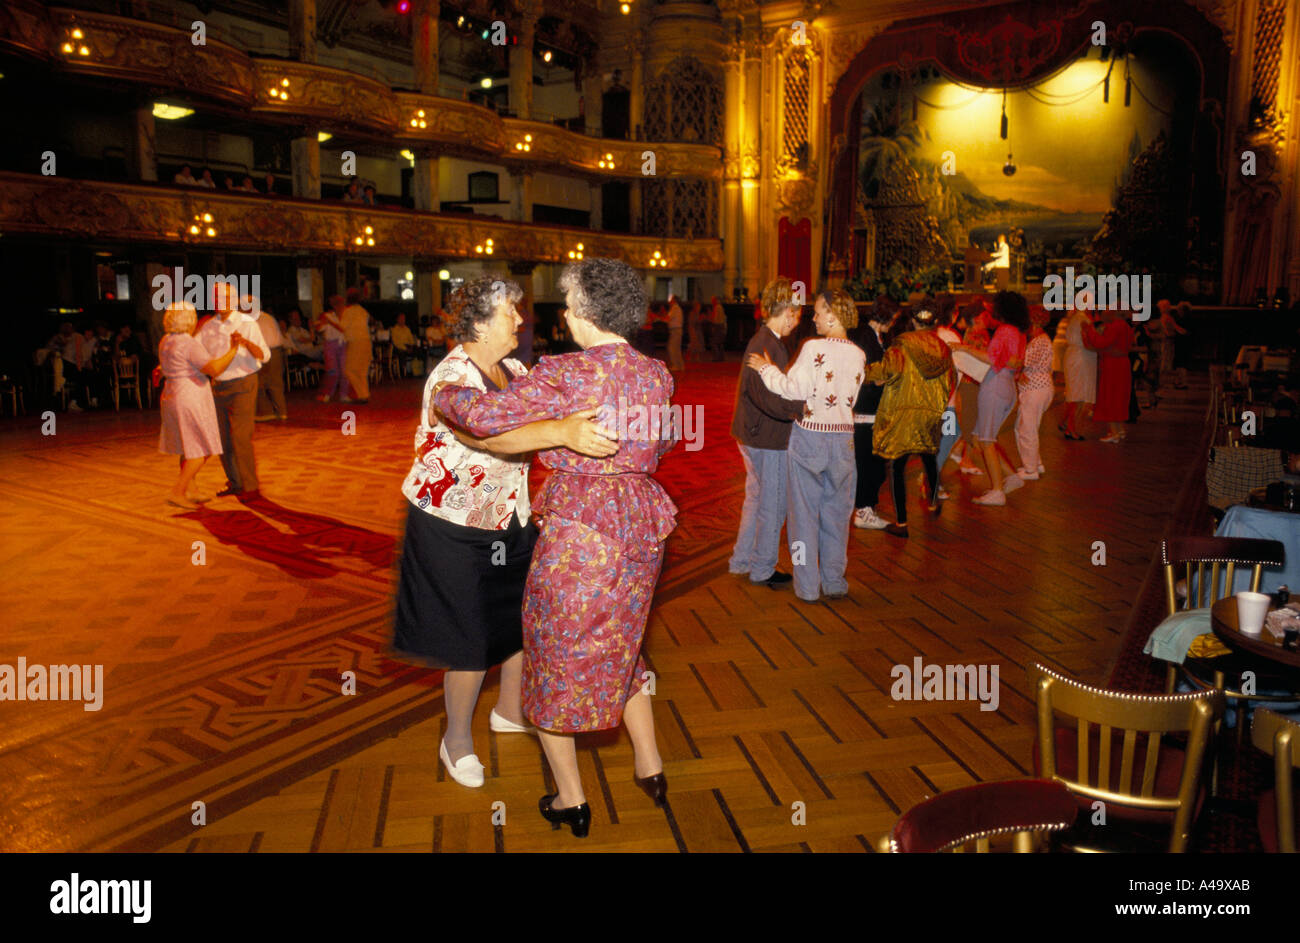 blackpool tower ballroom dancing starts at 10am - Stock Image